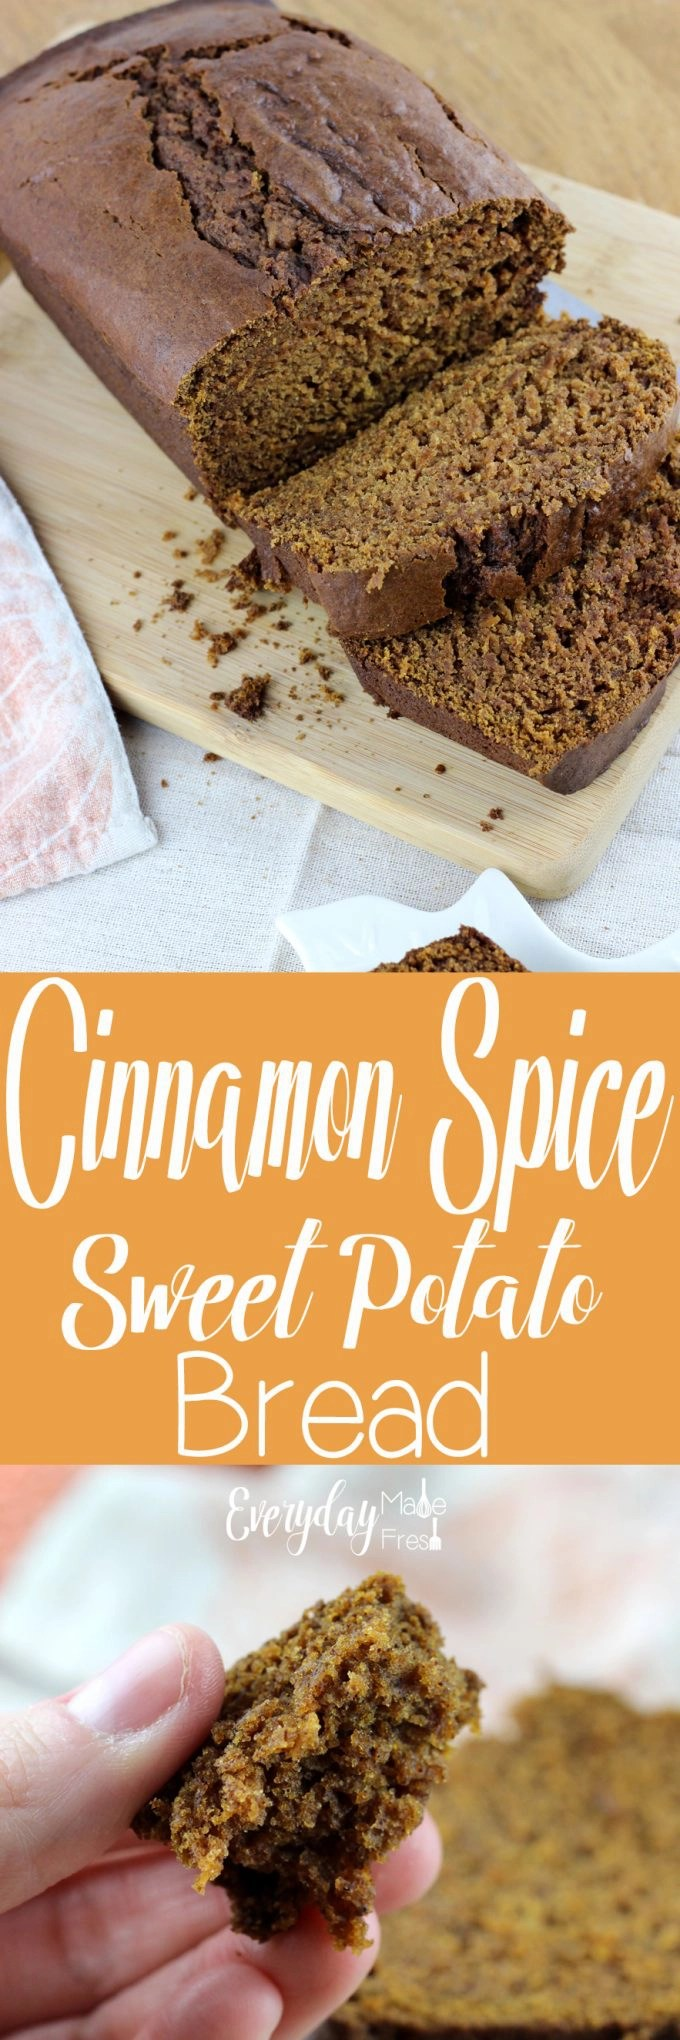 Who says sweet potatoes are for baking and casseroles only? This Cinnamon and Spice Sweet Potato Bread will prove otherwise. Moist, spicy, sweet, and delicious! | EverydayMadeFresh.com